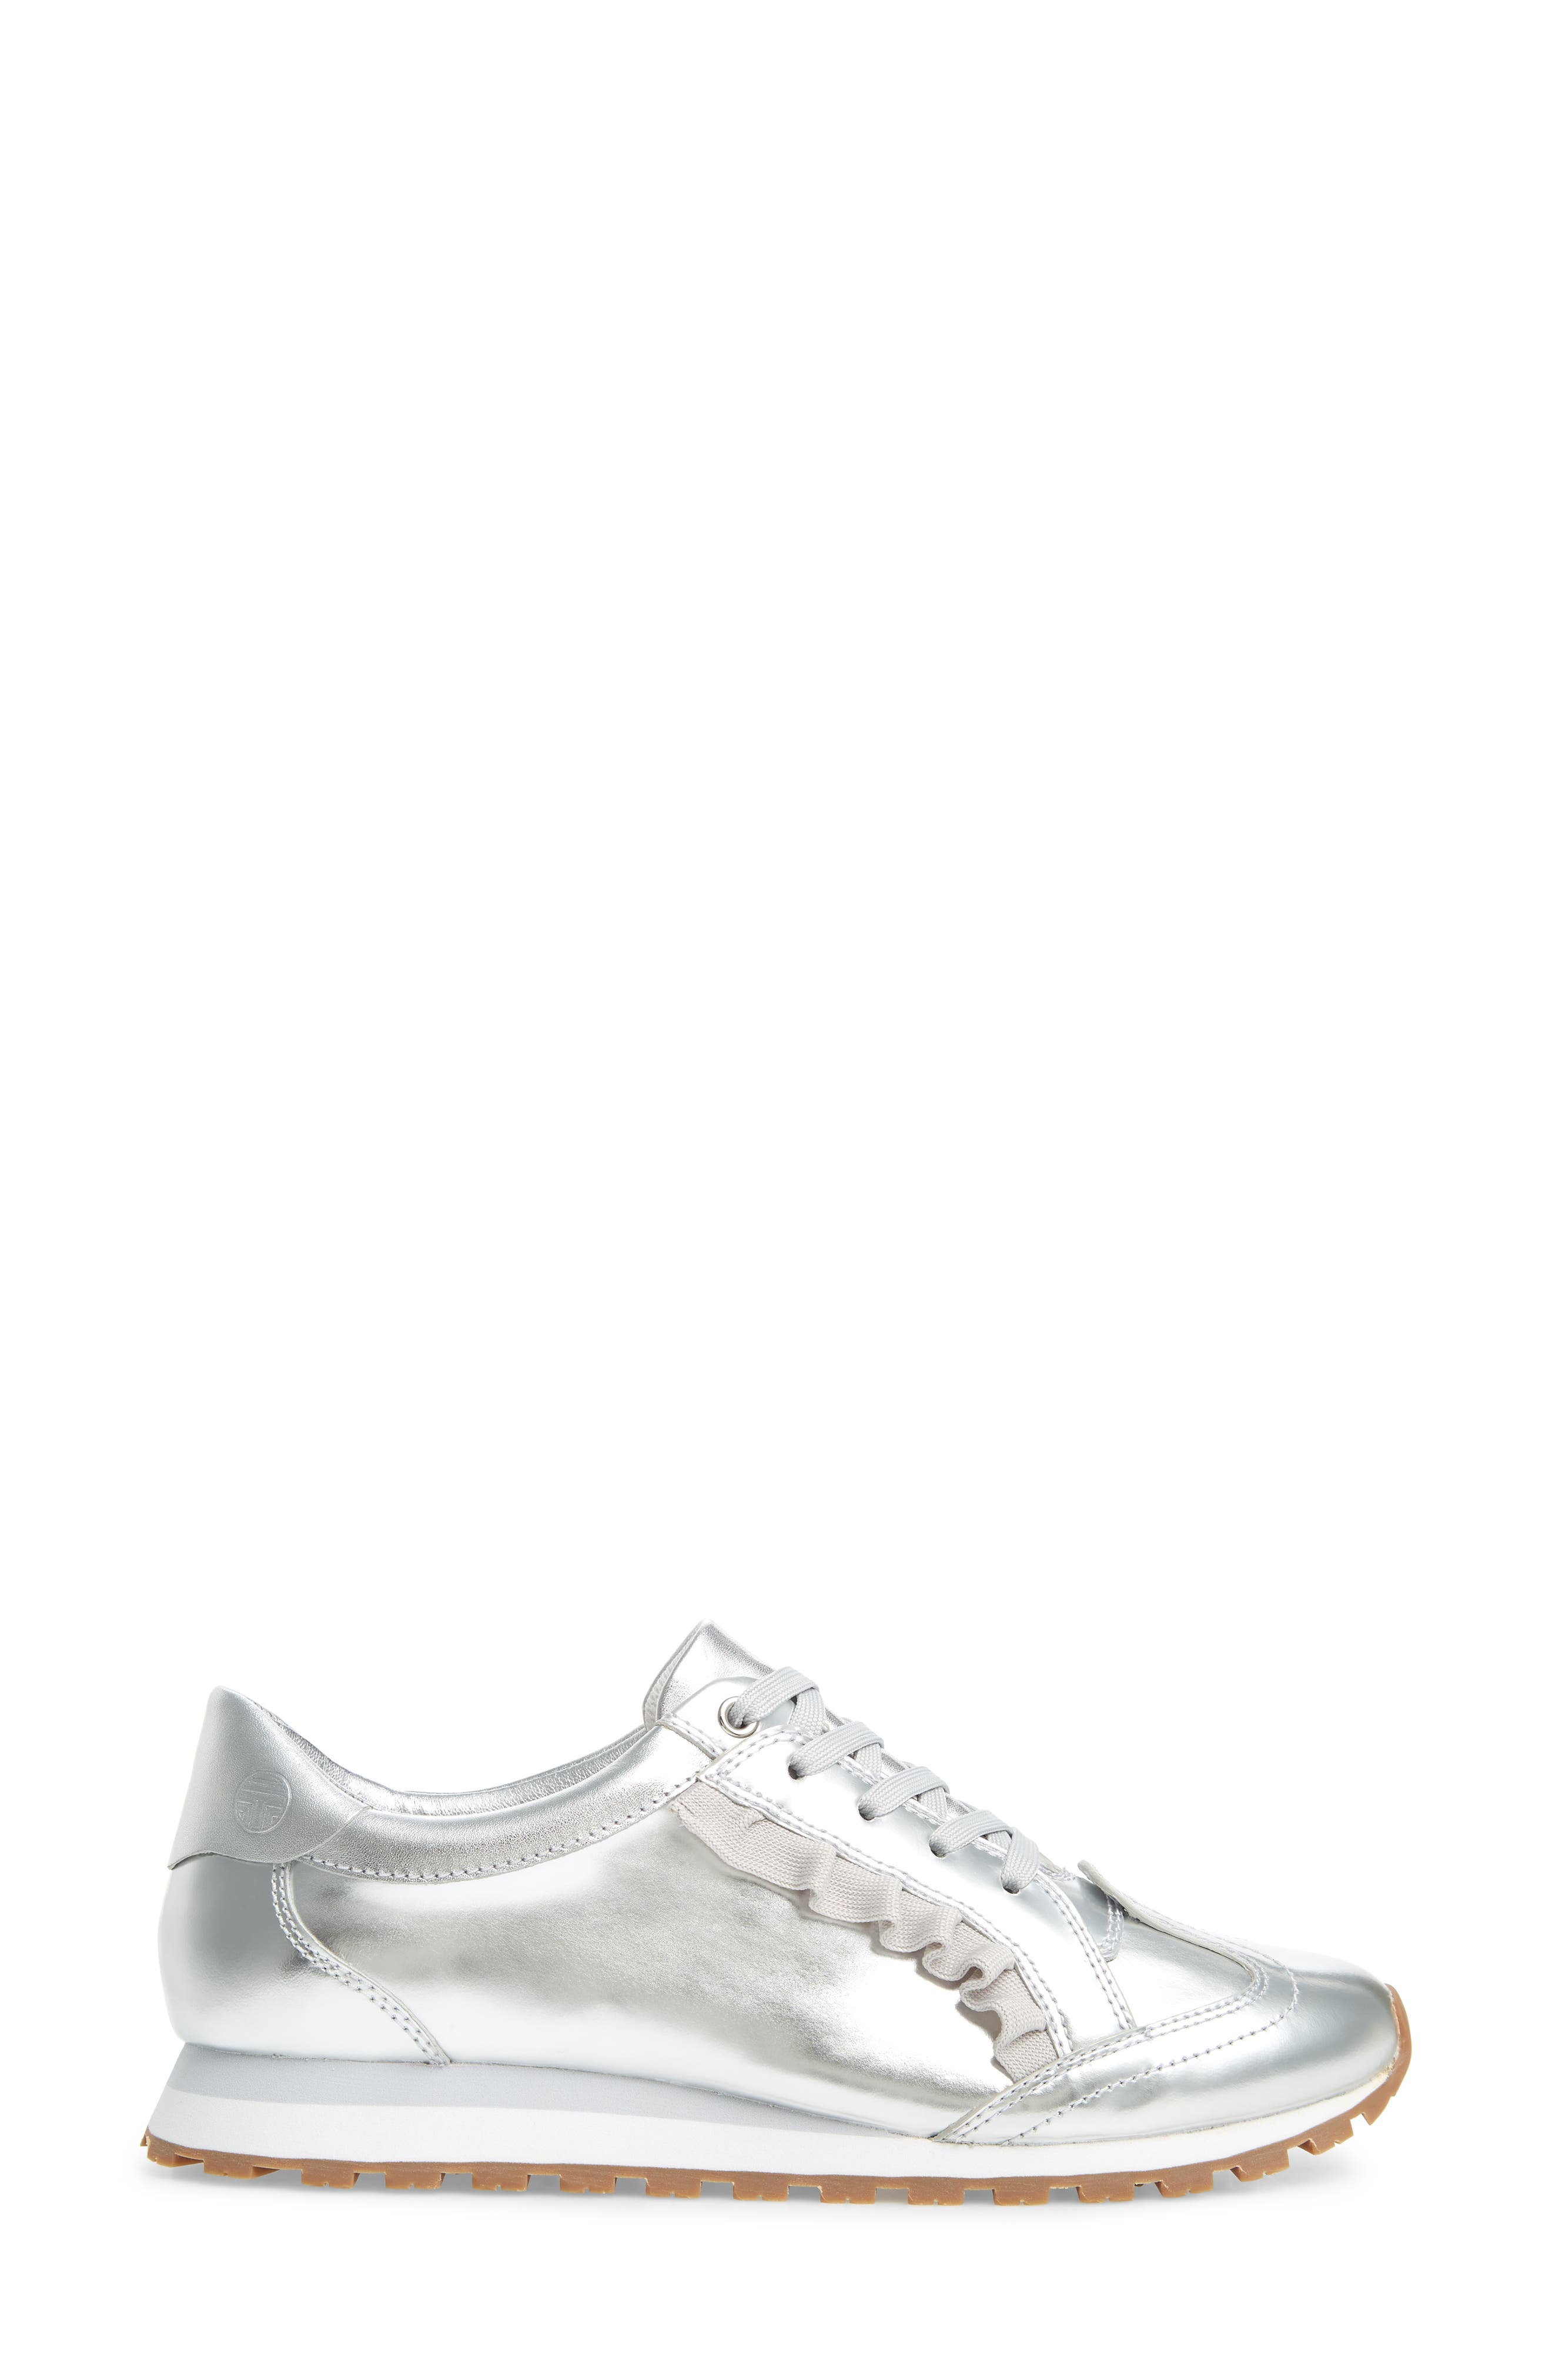 TORY SPORT,                             Ruffle Sneaker,                             Alternate thumbnail 3, color,                             SILVER/ GRAY